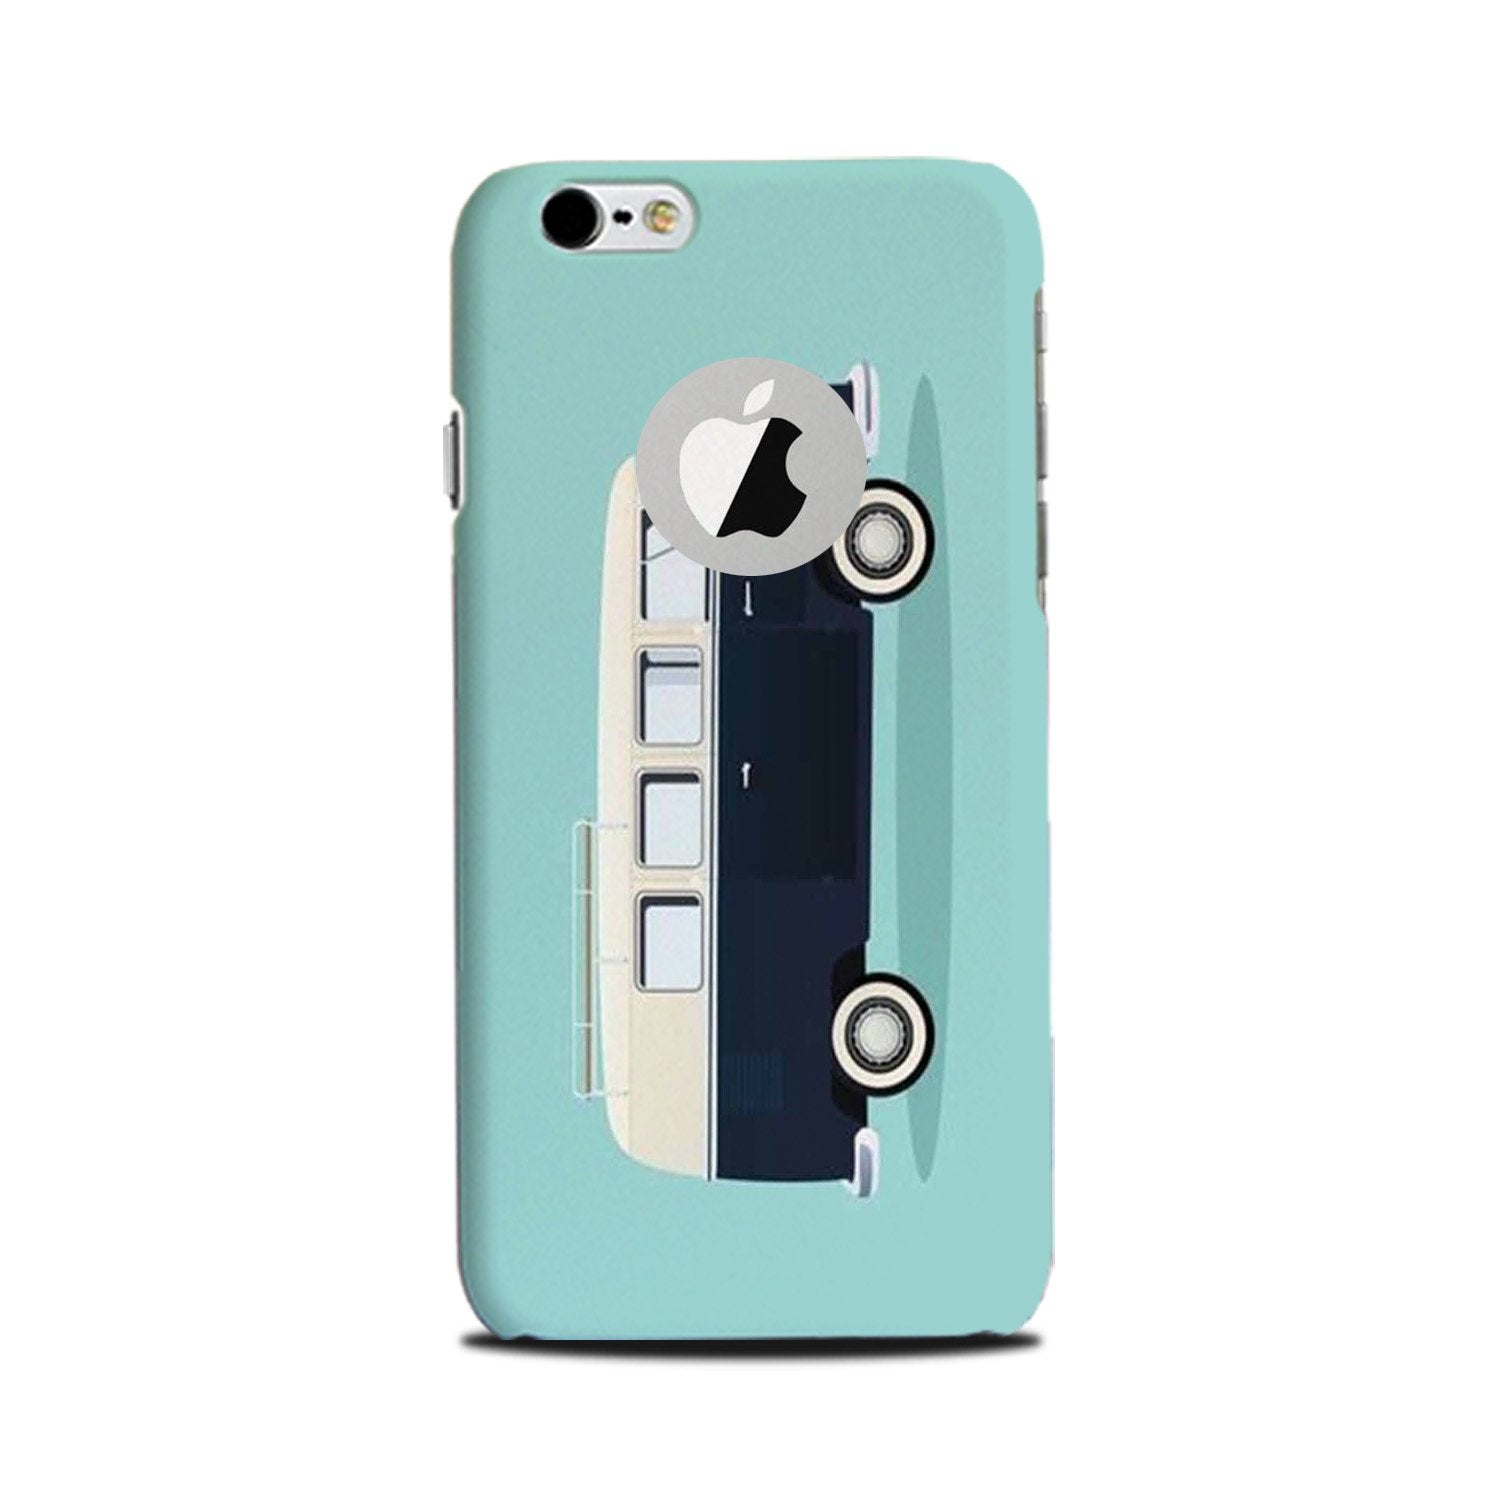 Travel Bus Mobile Back Case for iPhone 6 Plus / 6s Plus Logo Cut  (Design - 379)